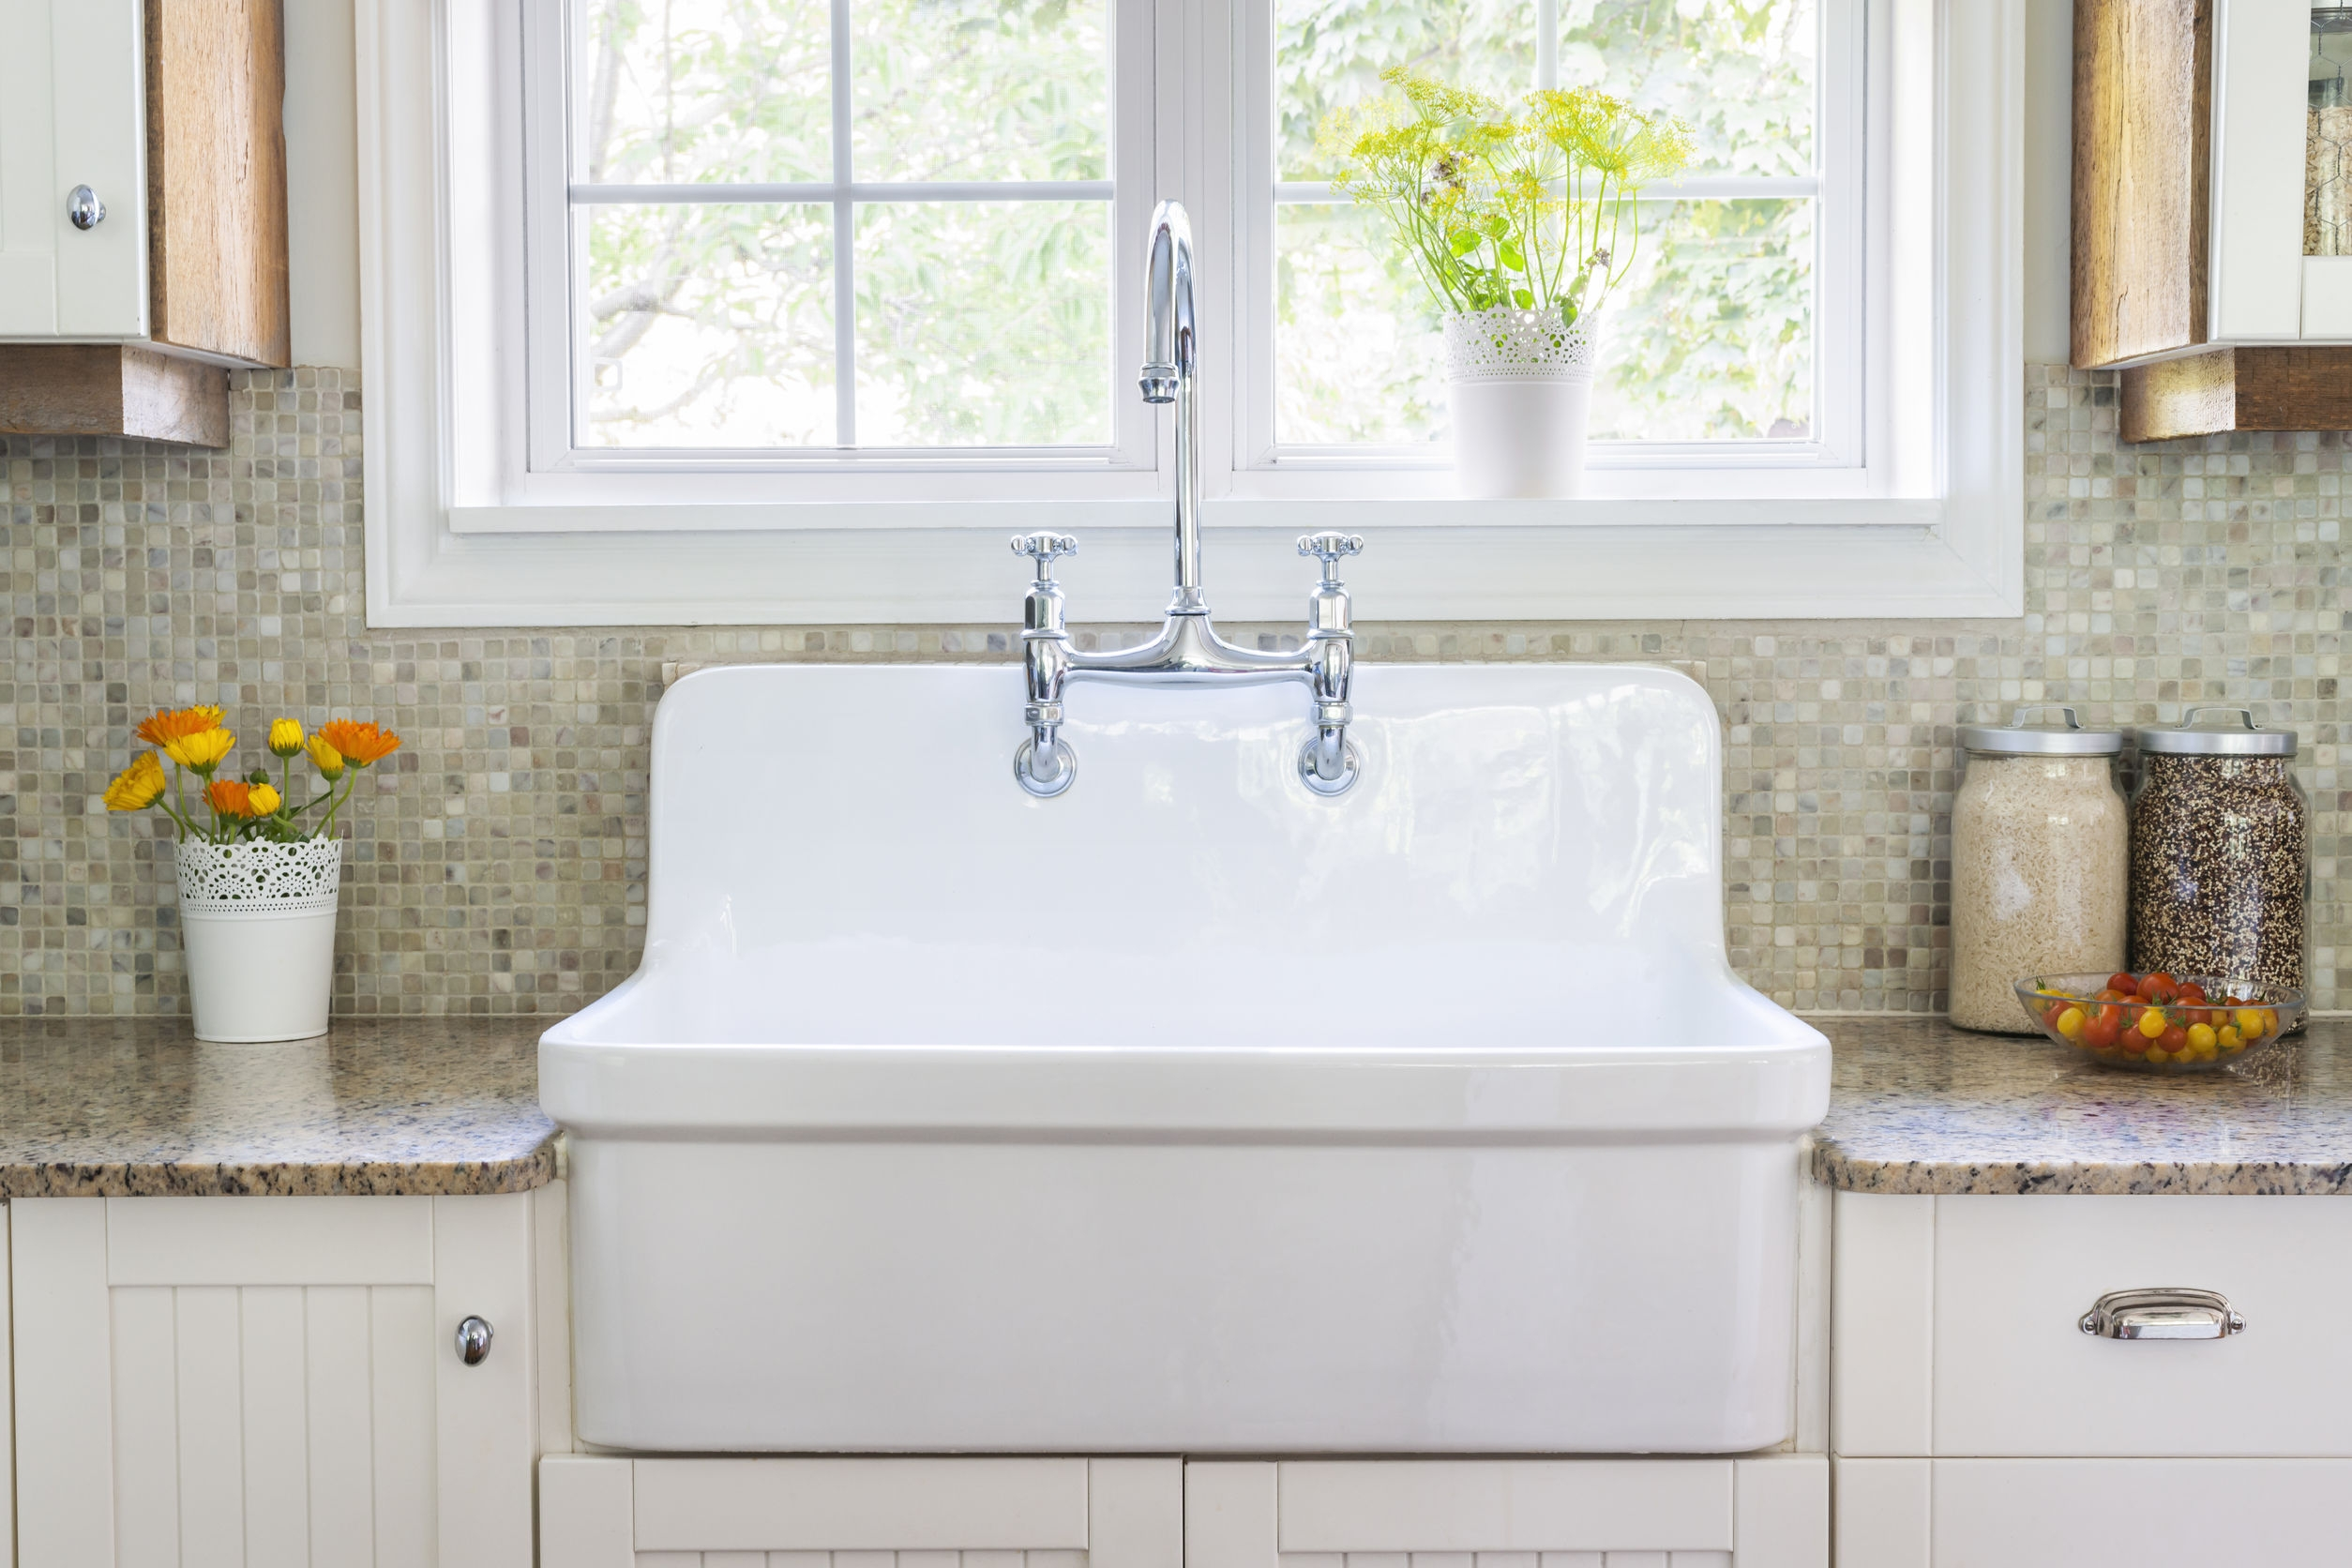 Choosing Your Sink Material: First Things First